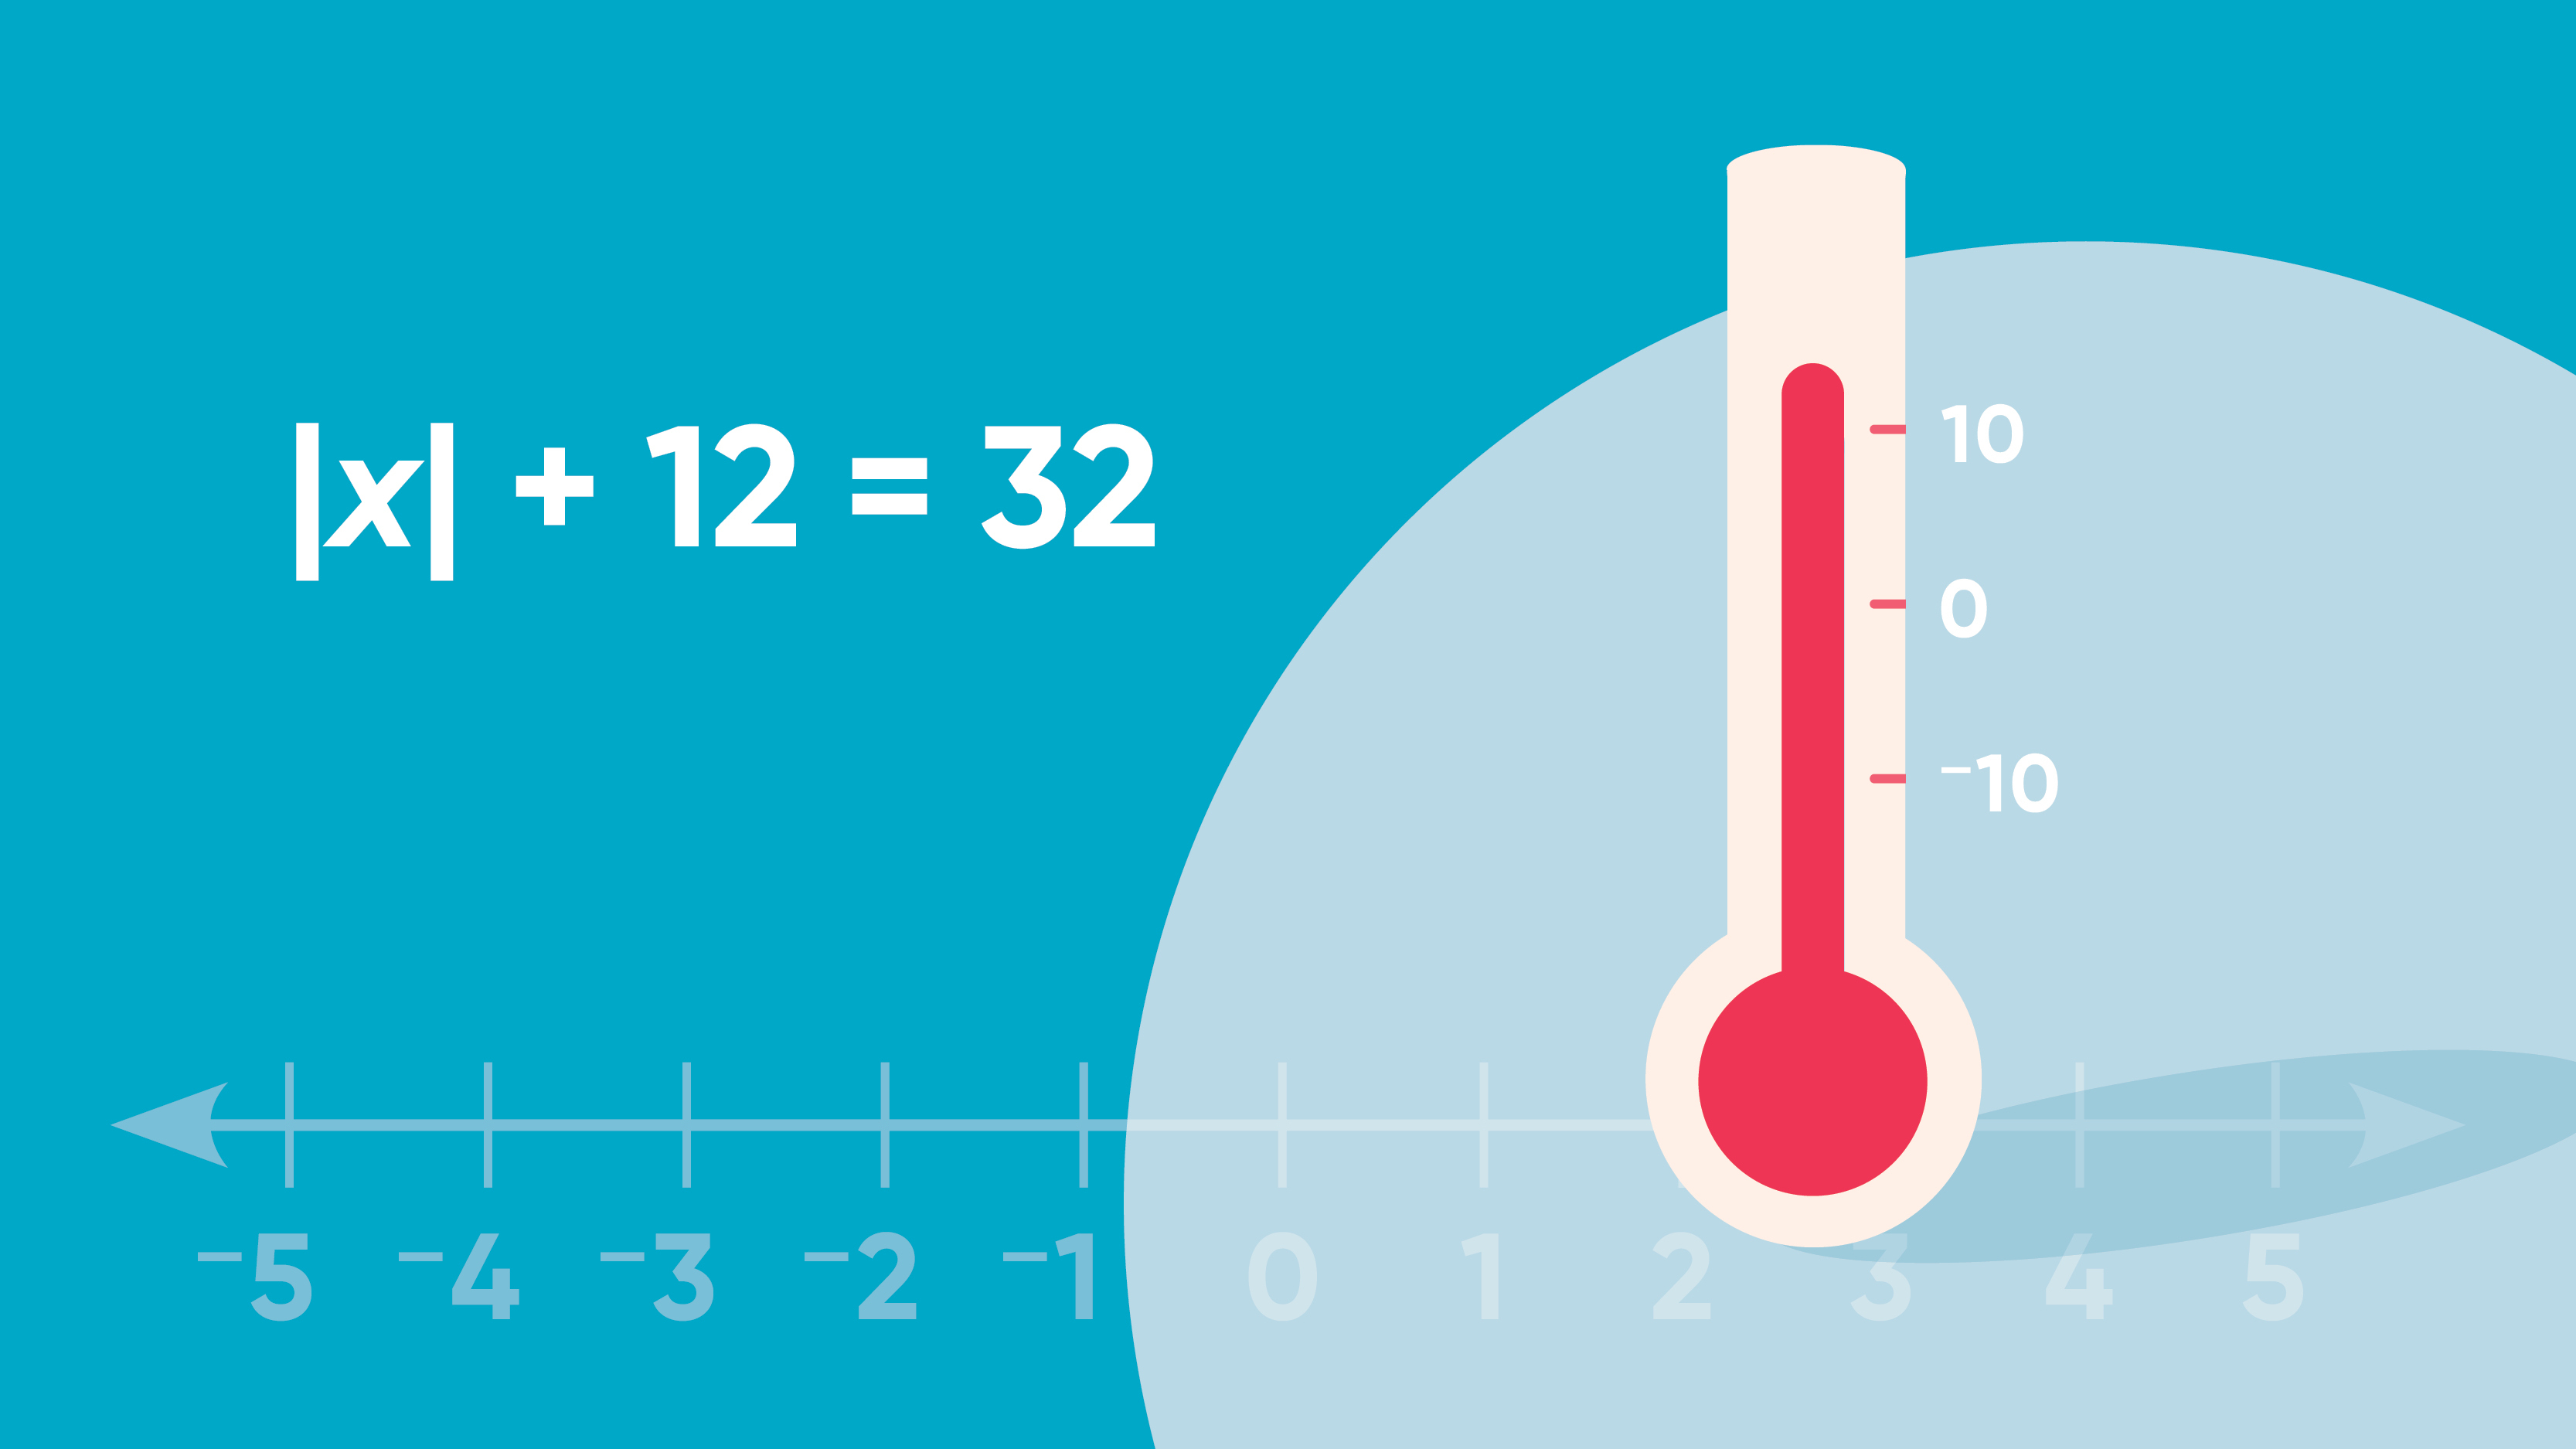 Teaching Absolute Value of a Number in Math